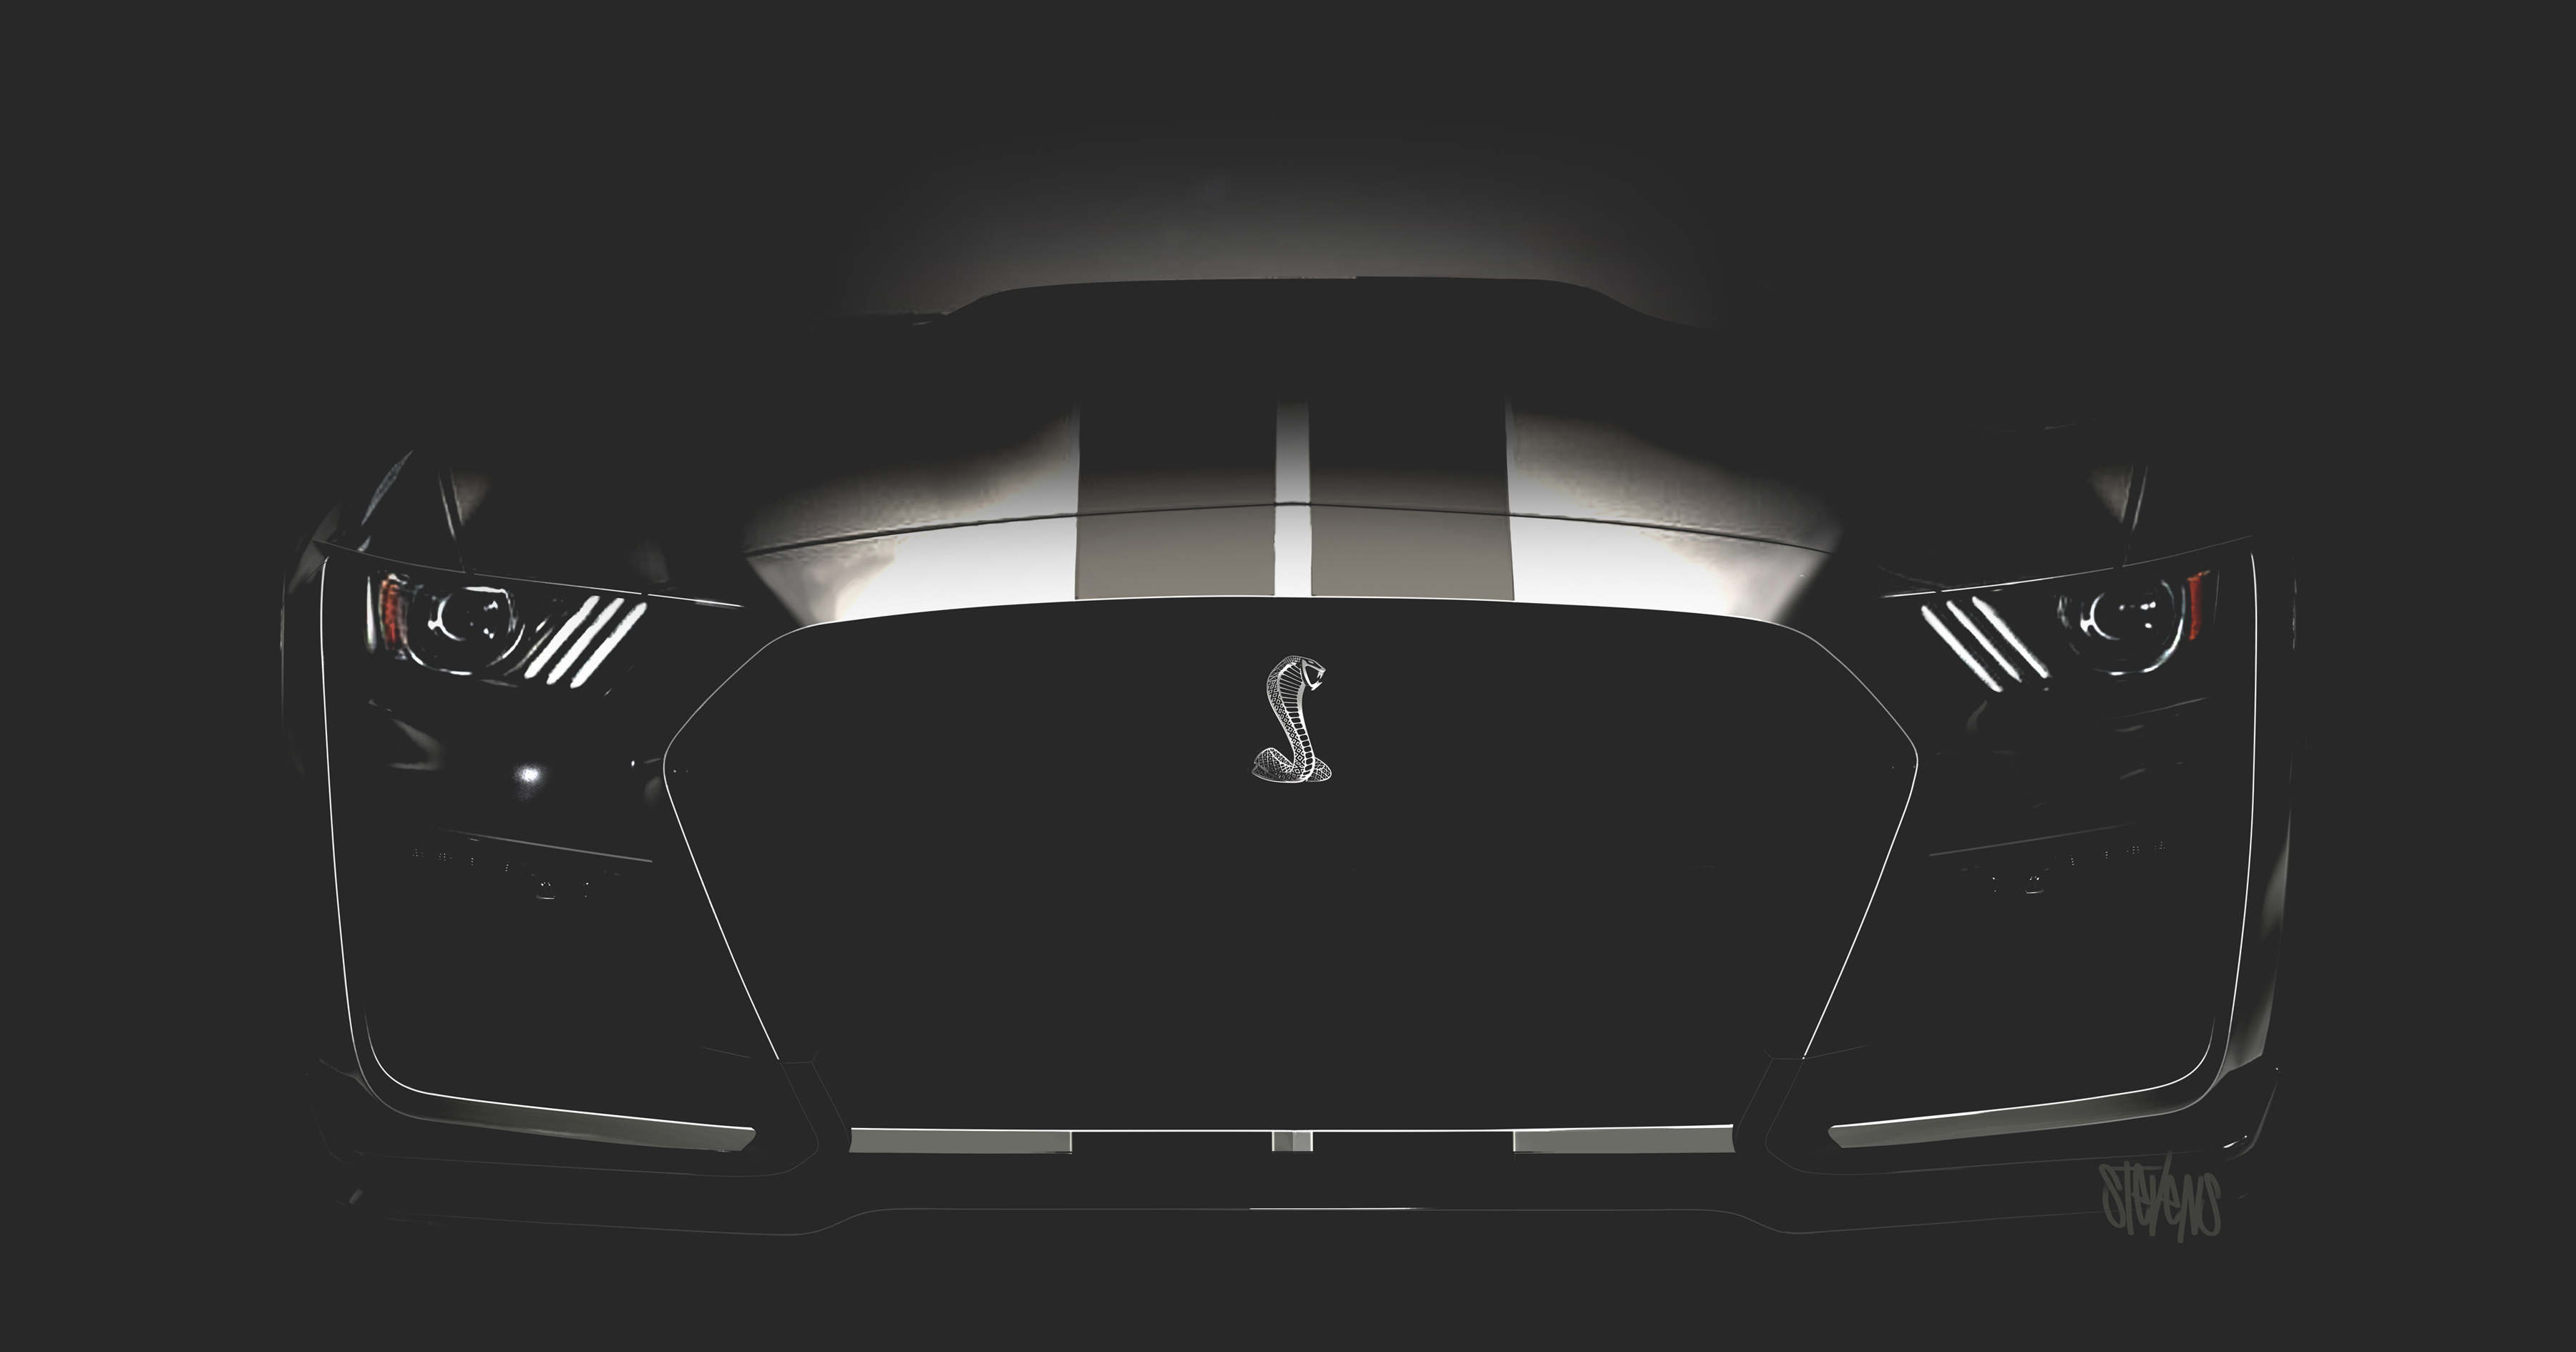 The face of the 2020 Ford Mustang Shelby GT500 thumbnail